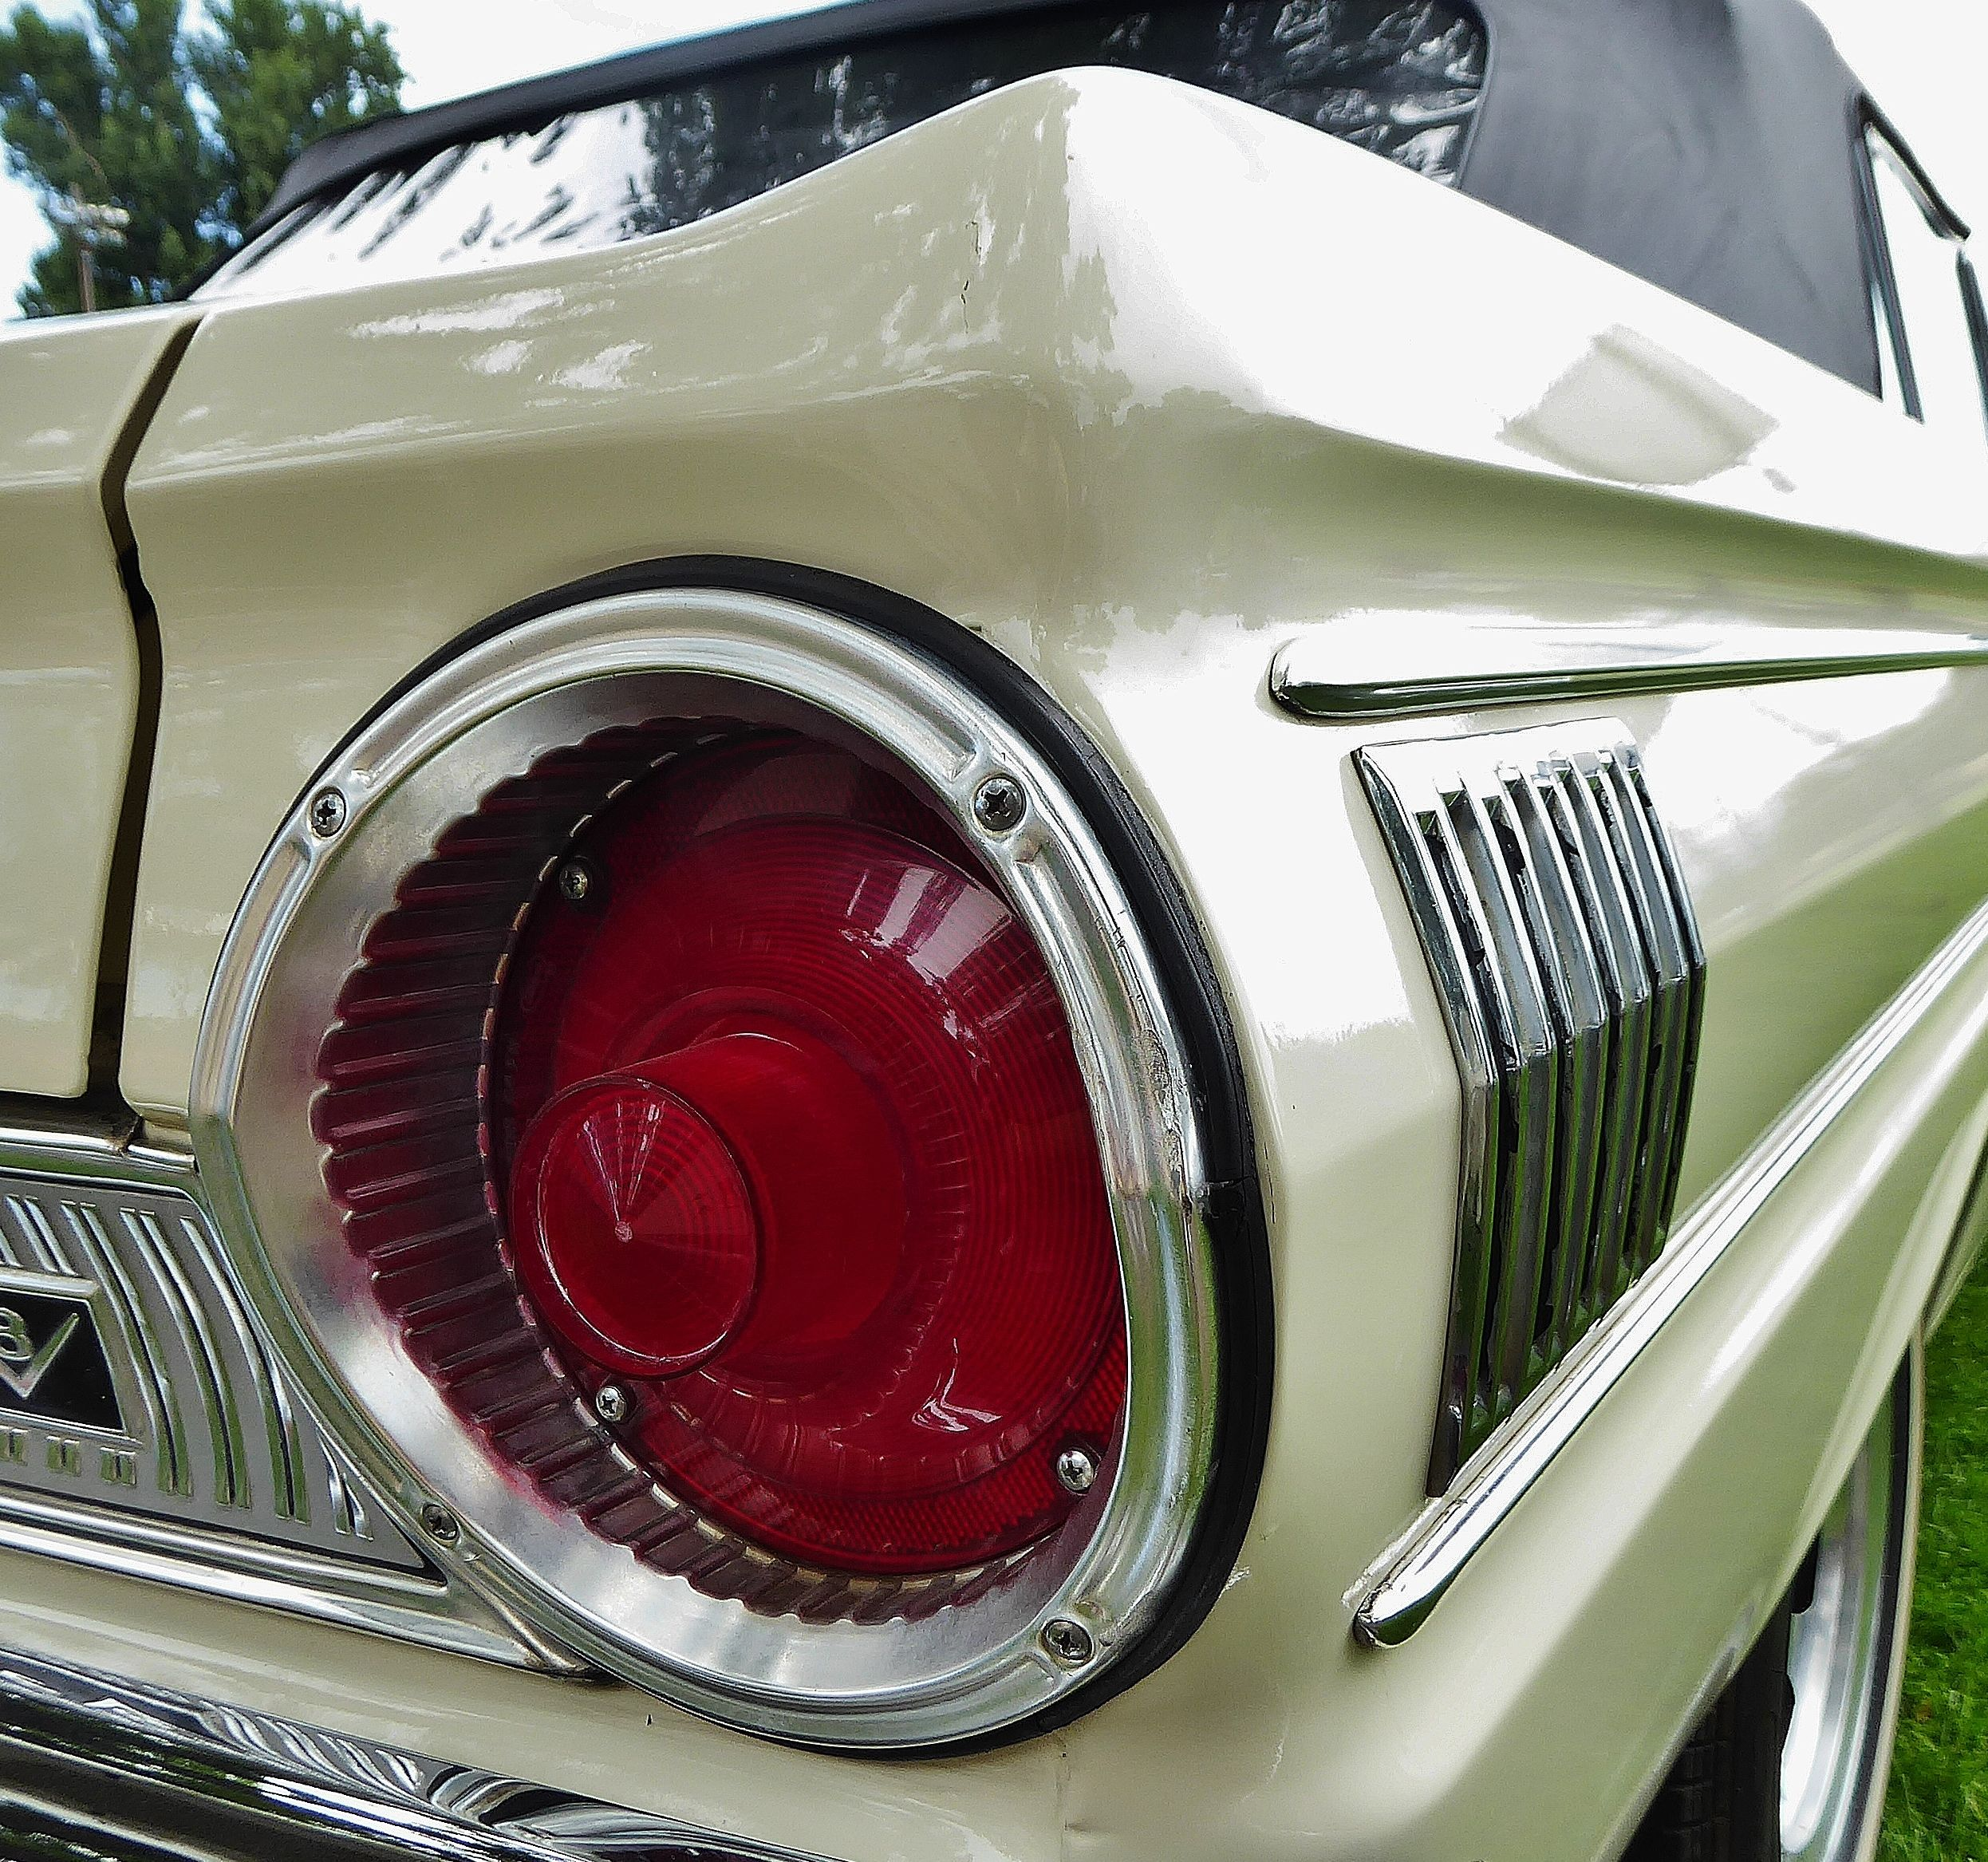 1964 Ford Falcon Tail Light Photography By David E Nelson 2019 Ford Falcon Classic Cars Tail Light